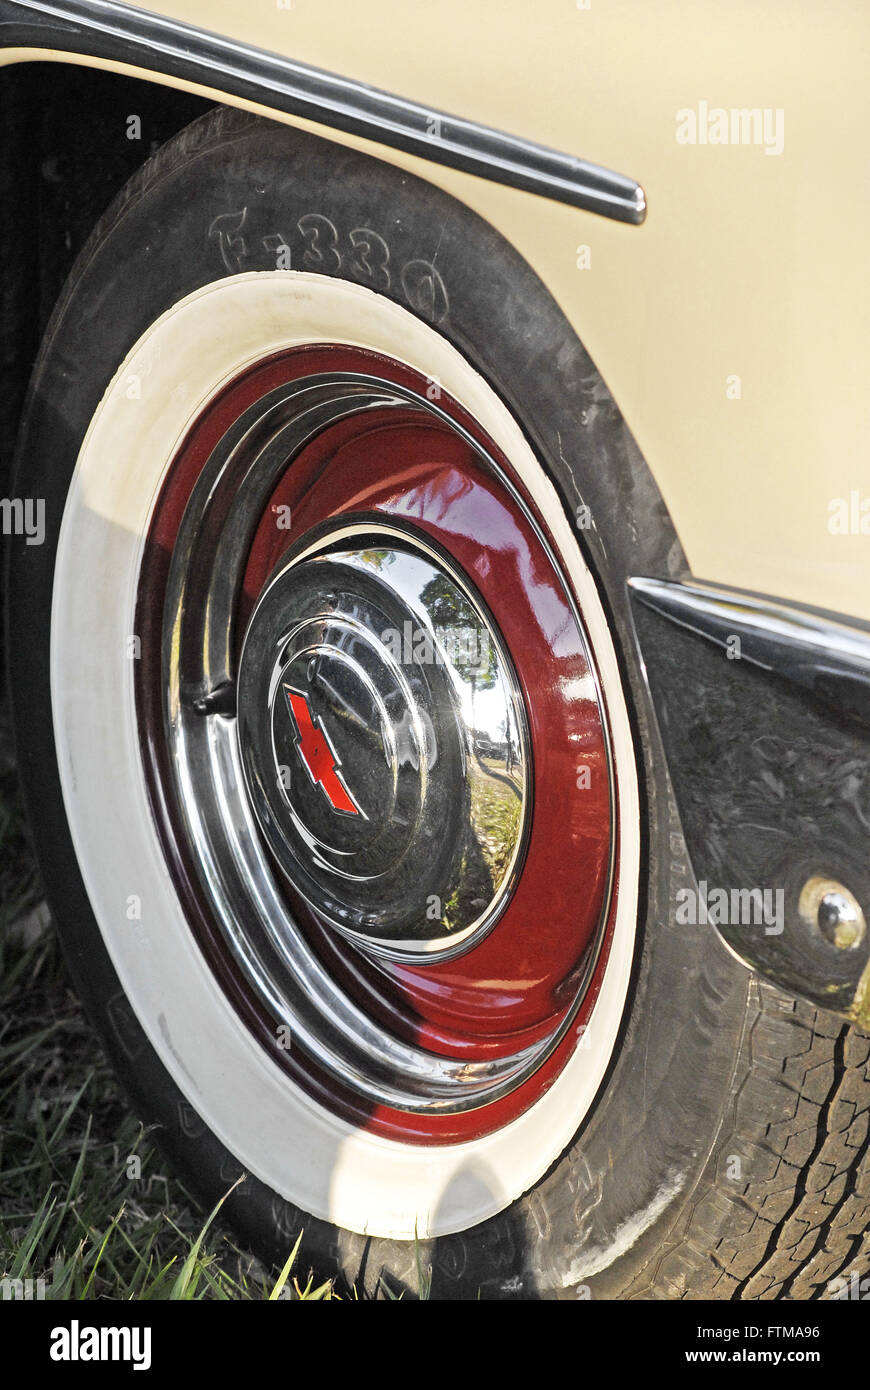 Detail of tire with white band on exhibition of old veicilos - Stock Image